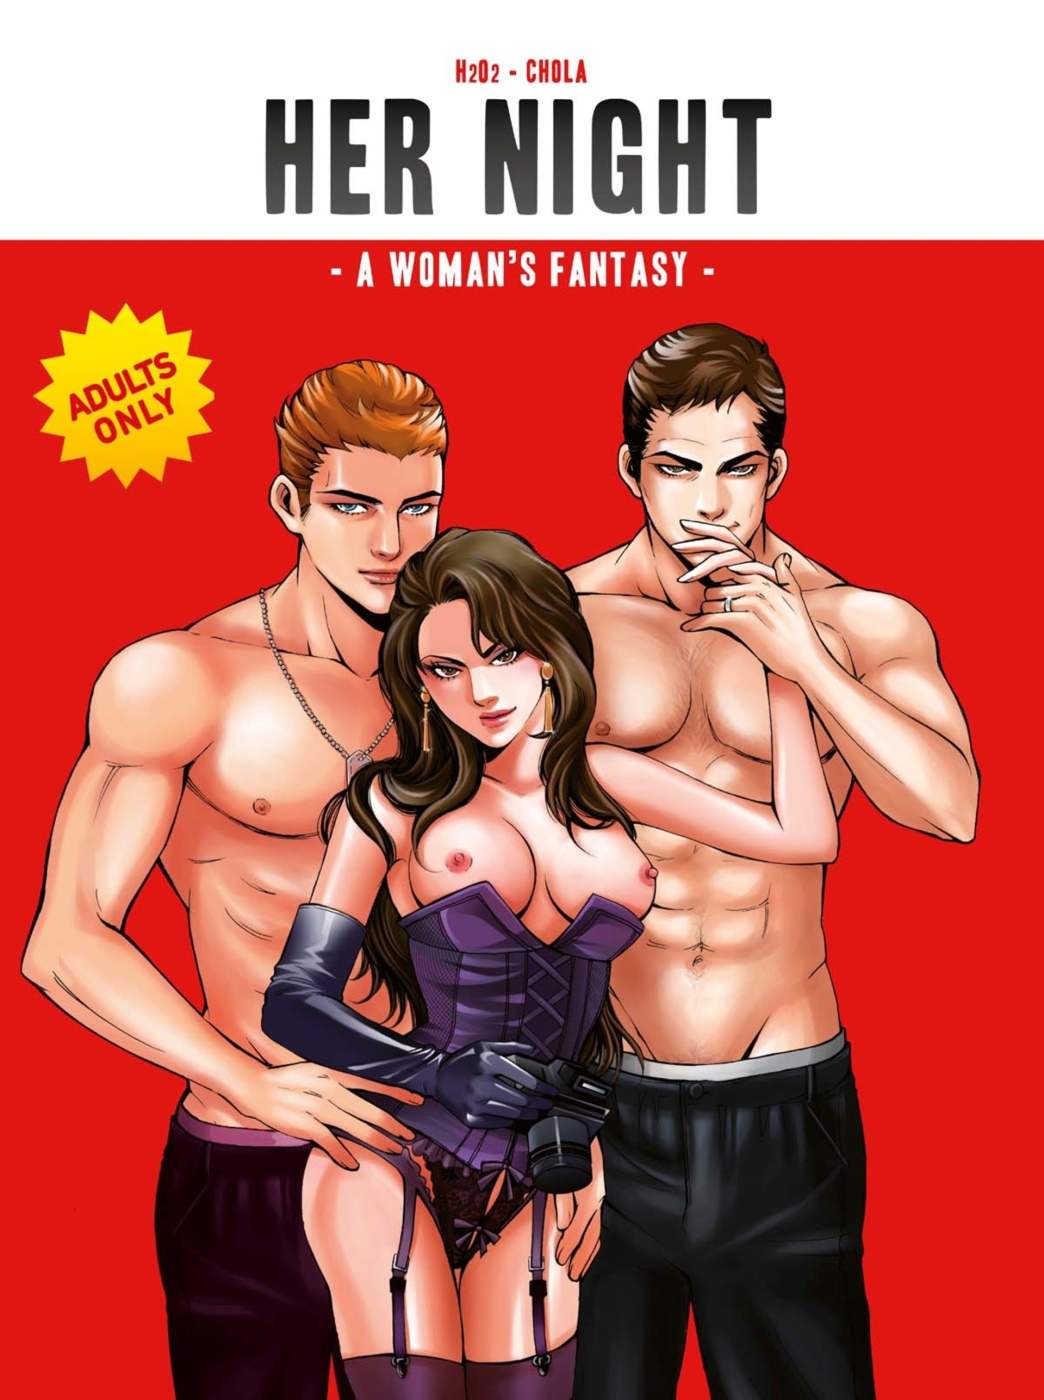 Her Night – A Woman's Fantasy image 1